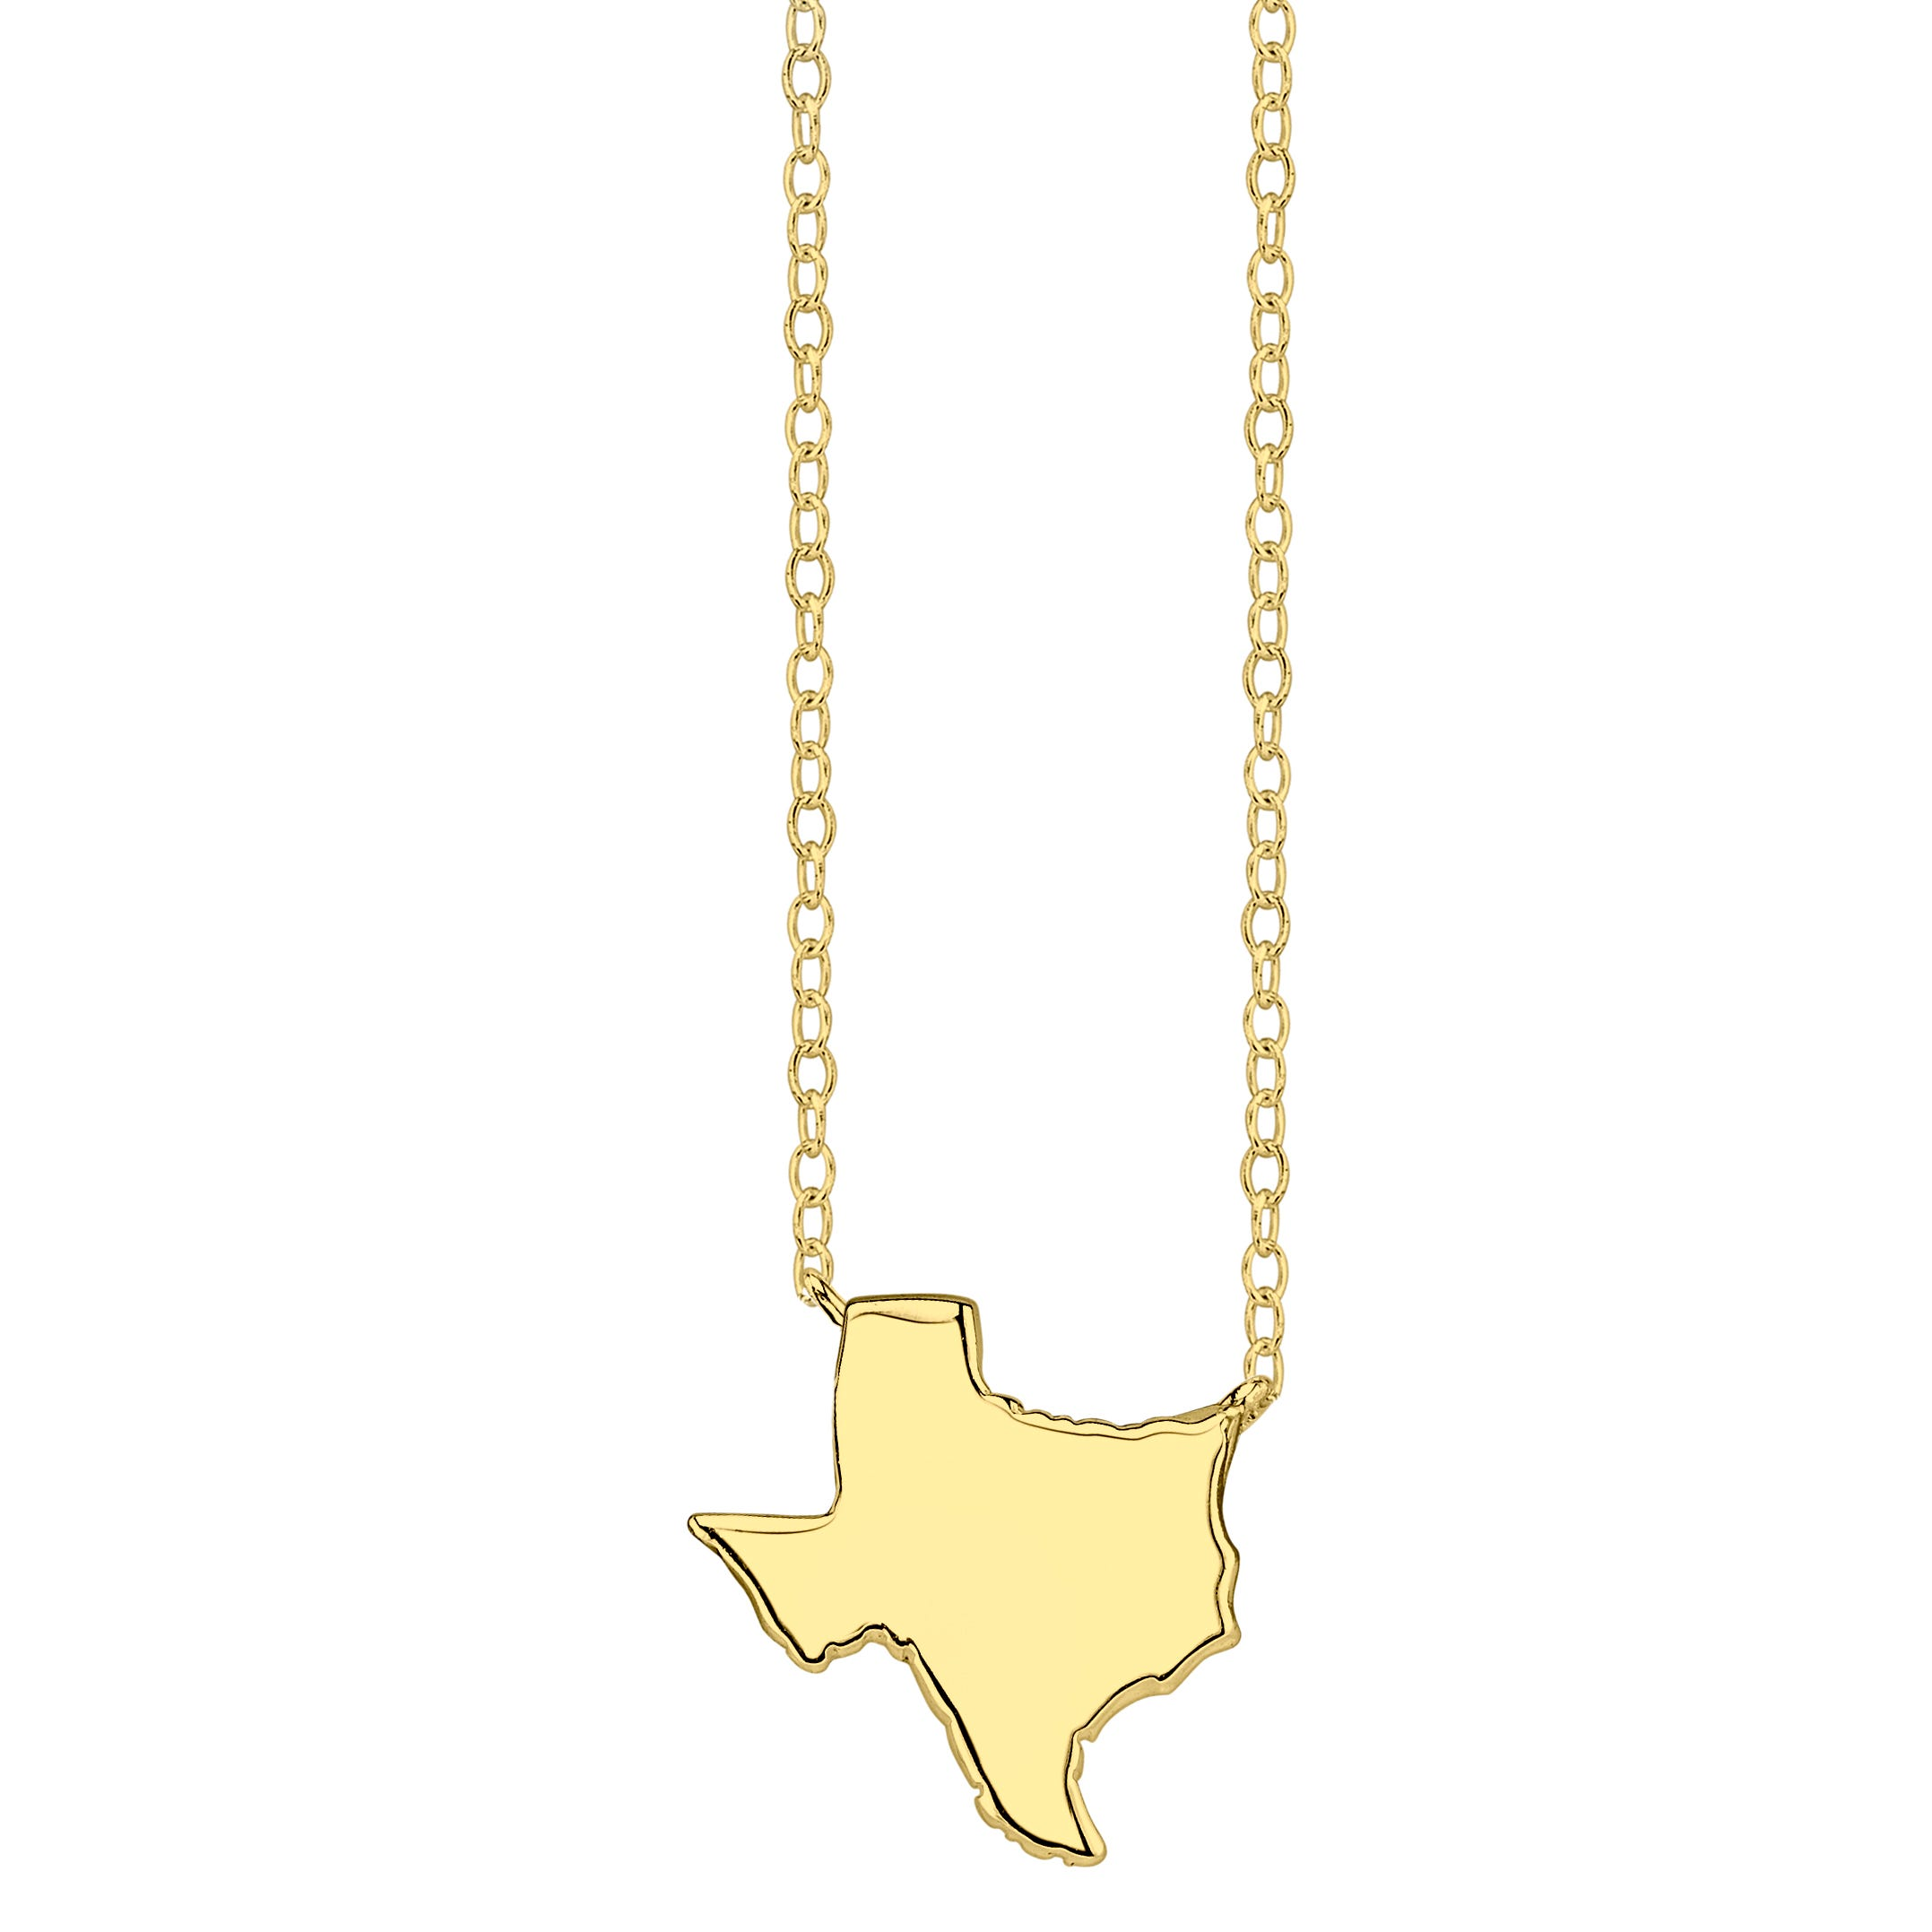 Texas State Pendant Necklace in Yellow Gold Plated Sterling Silver